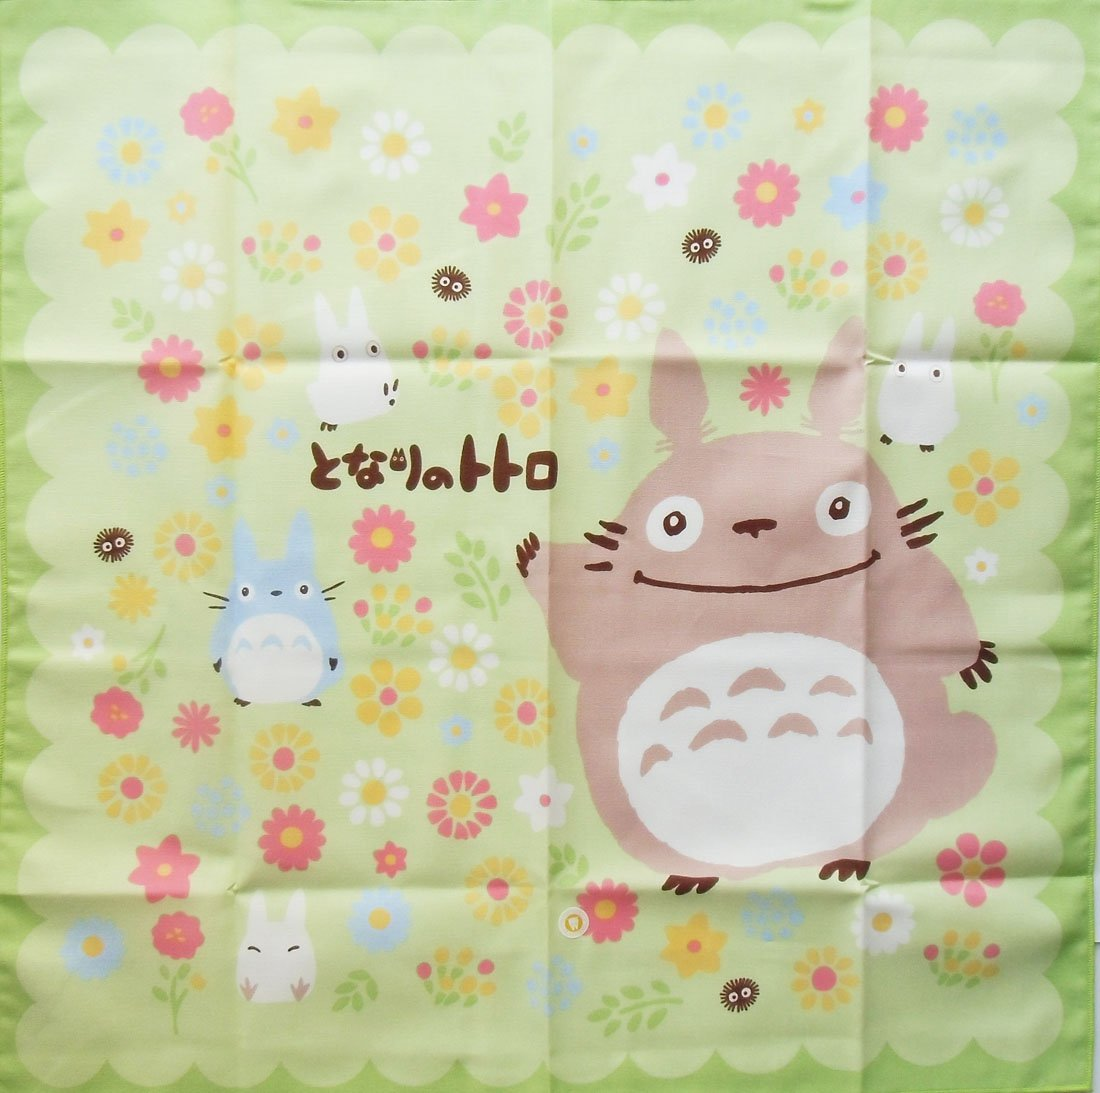 Lunch Bento Cloth - 43x43cm - made in Japan - flower - Totoro - Ghibli - 2013 (new)